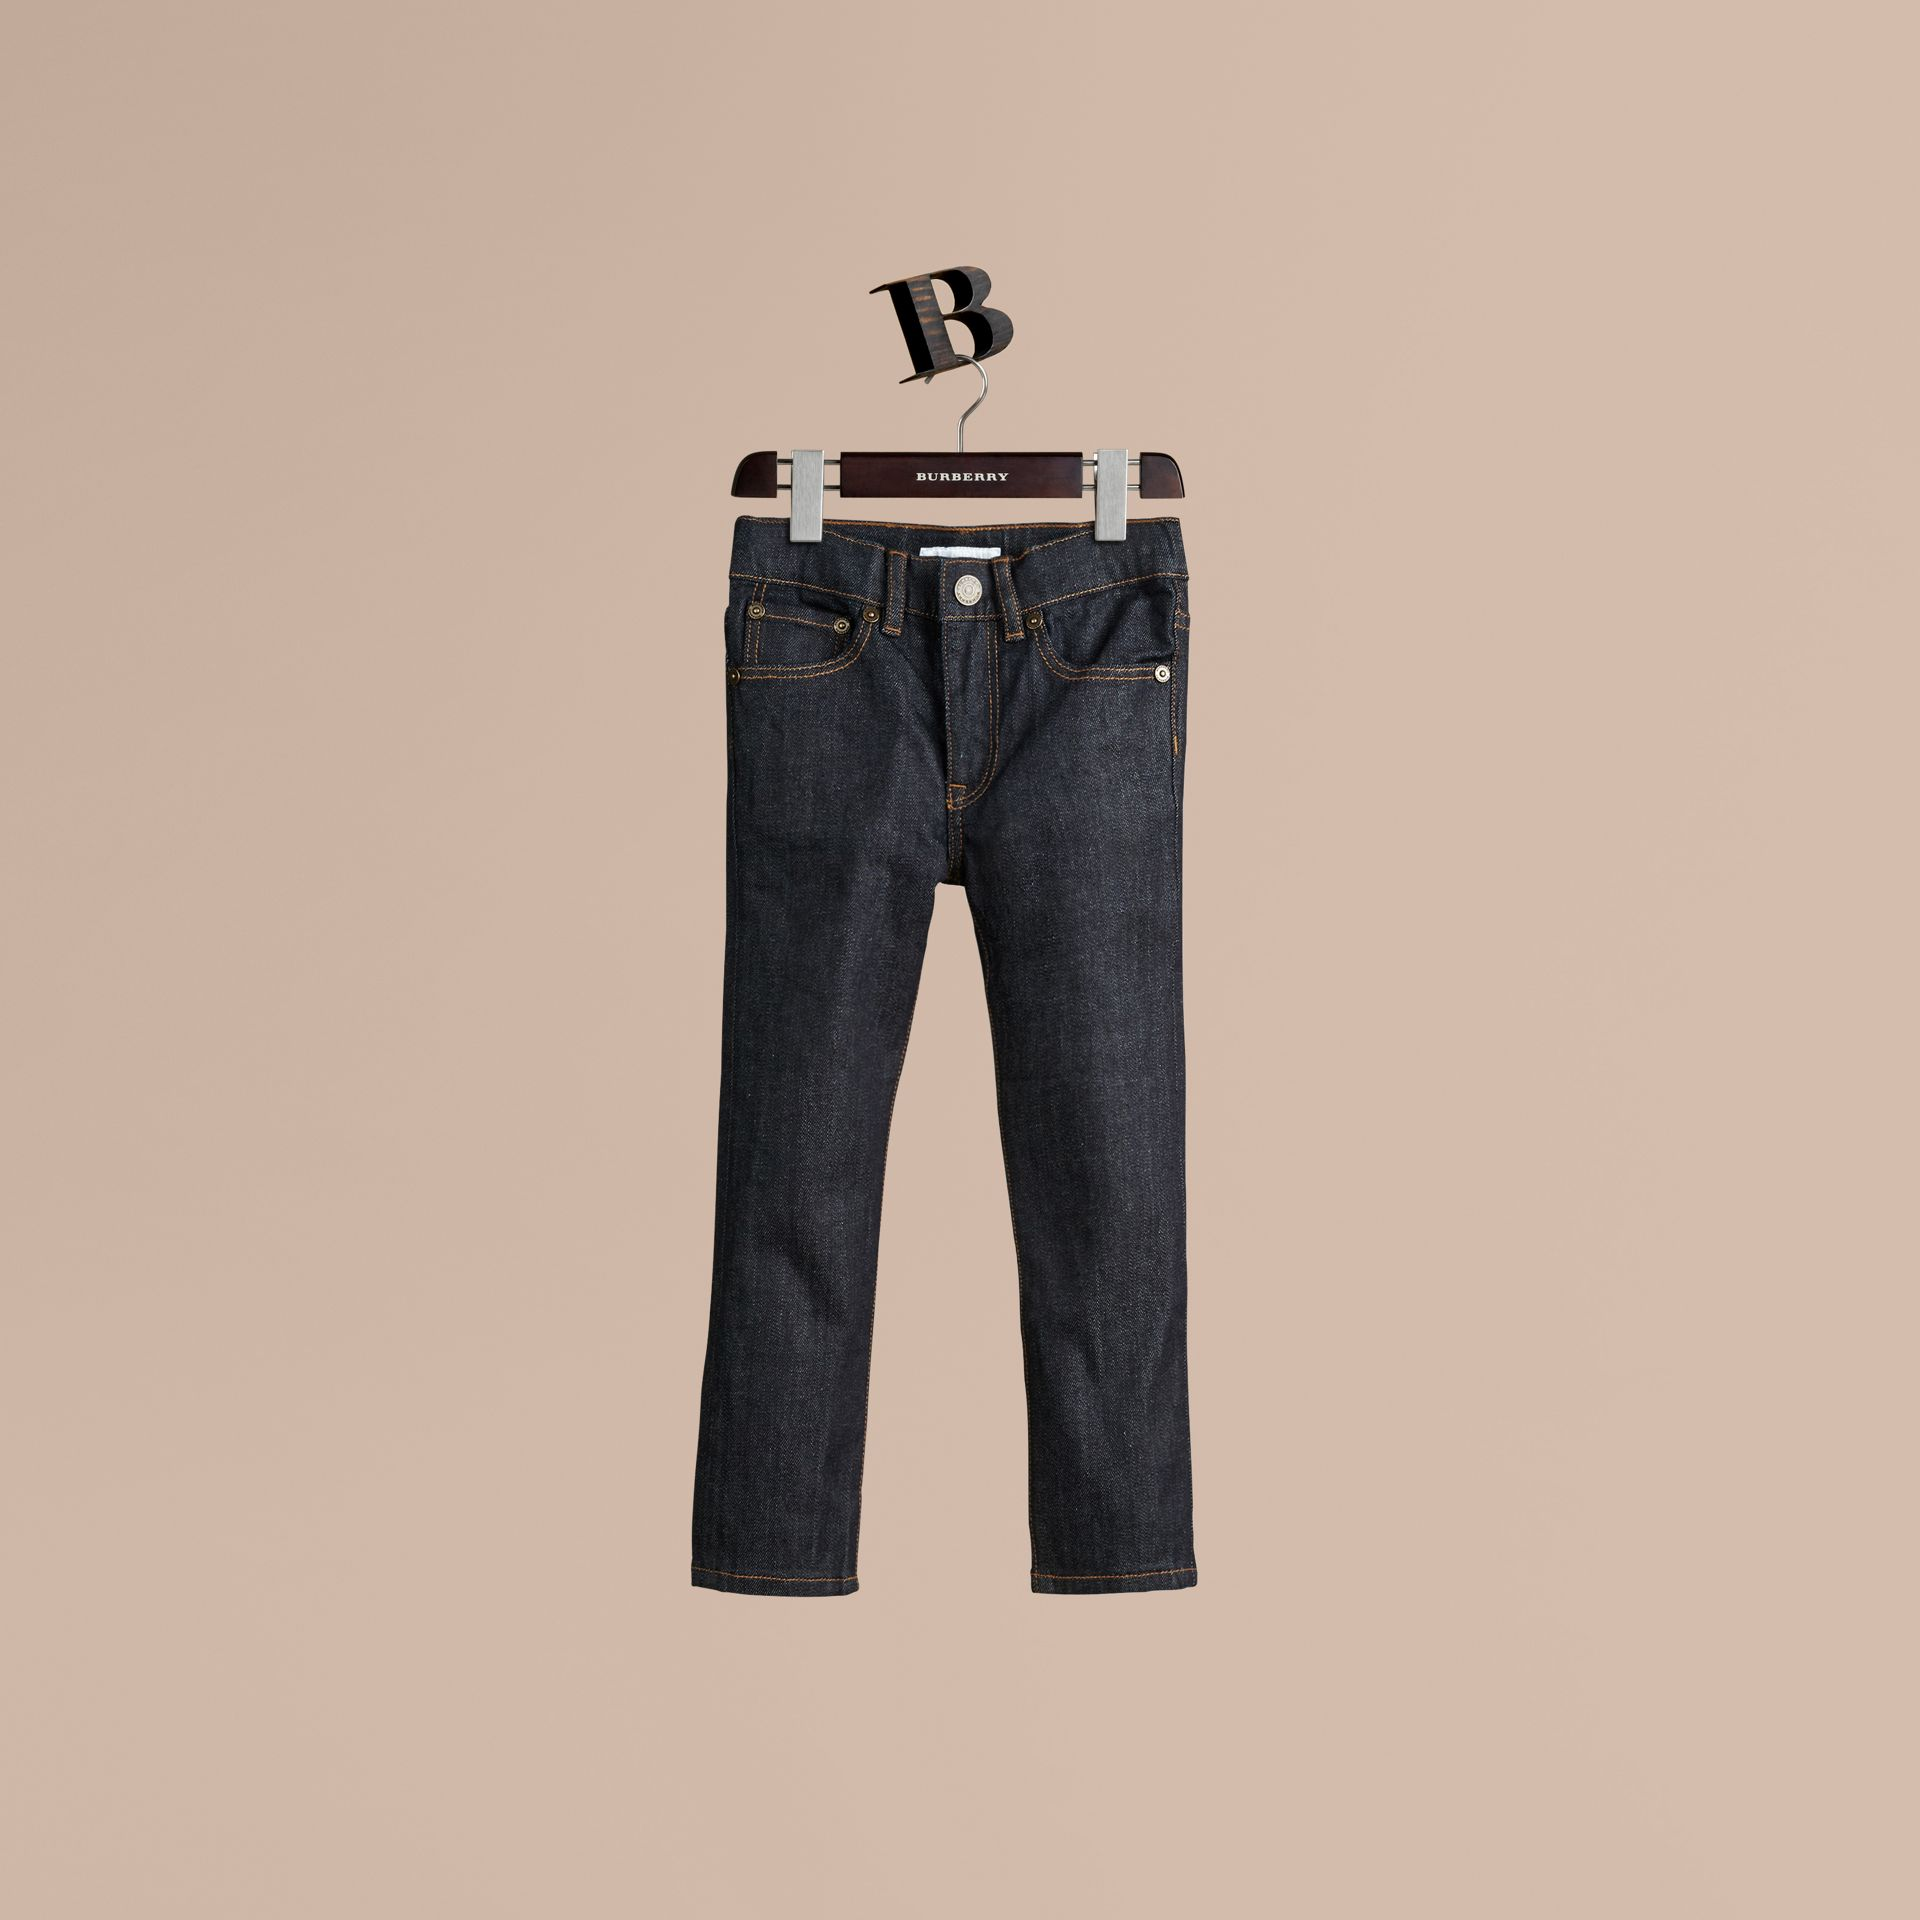 Relaxed Fit Indigo Jeans in Dark - Boy | Burberry - gallery image 1